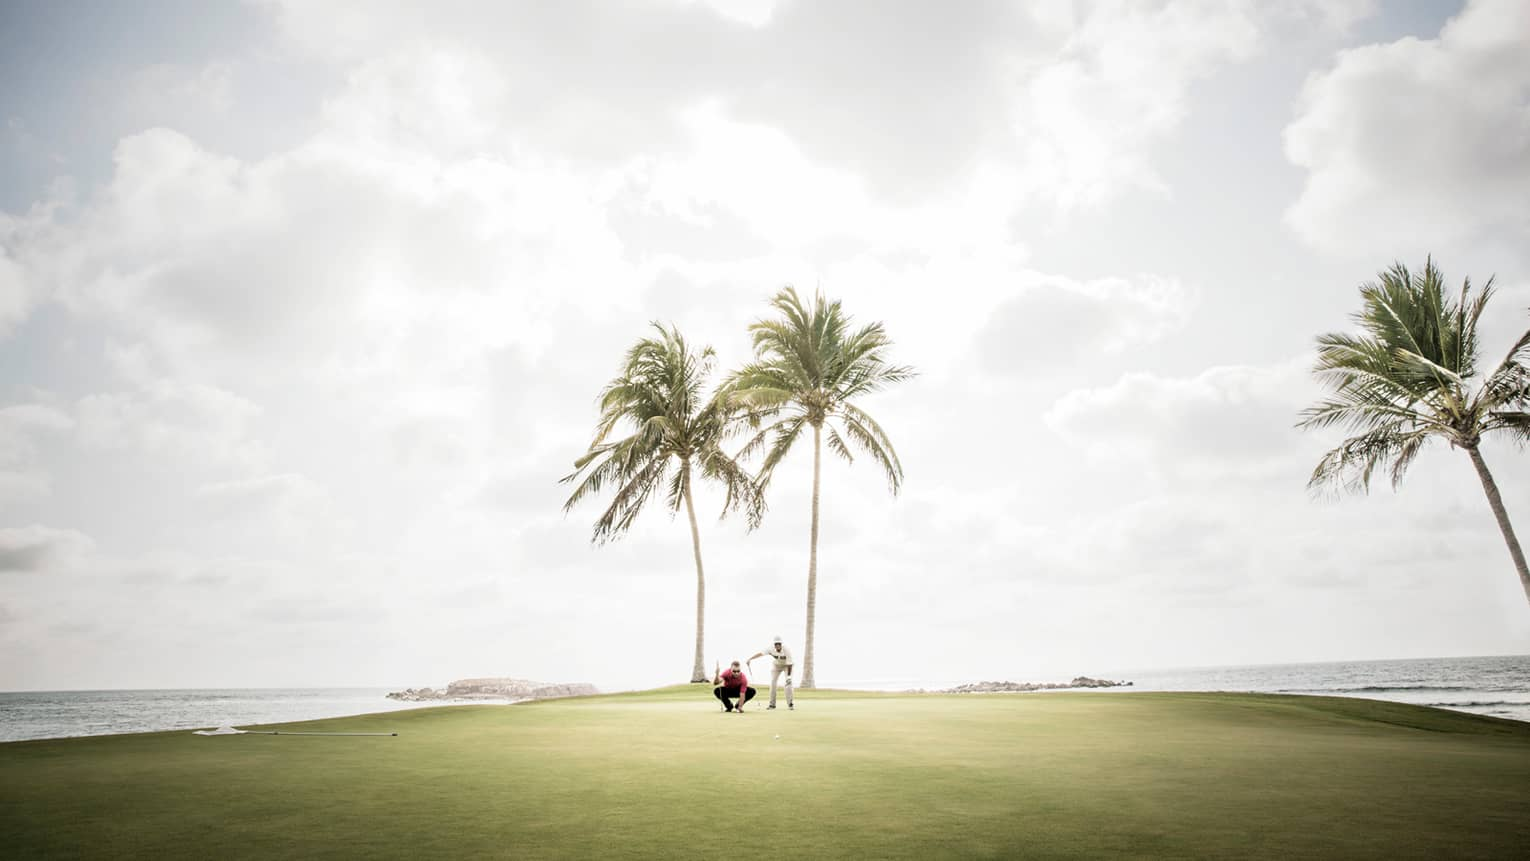 Two men kneel on golf green under two palm trees, ocean on each side